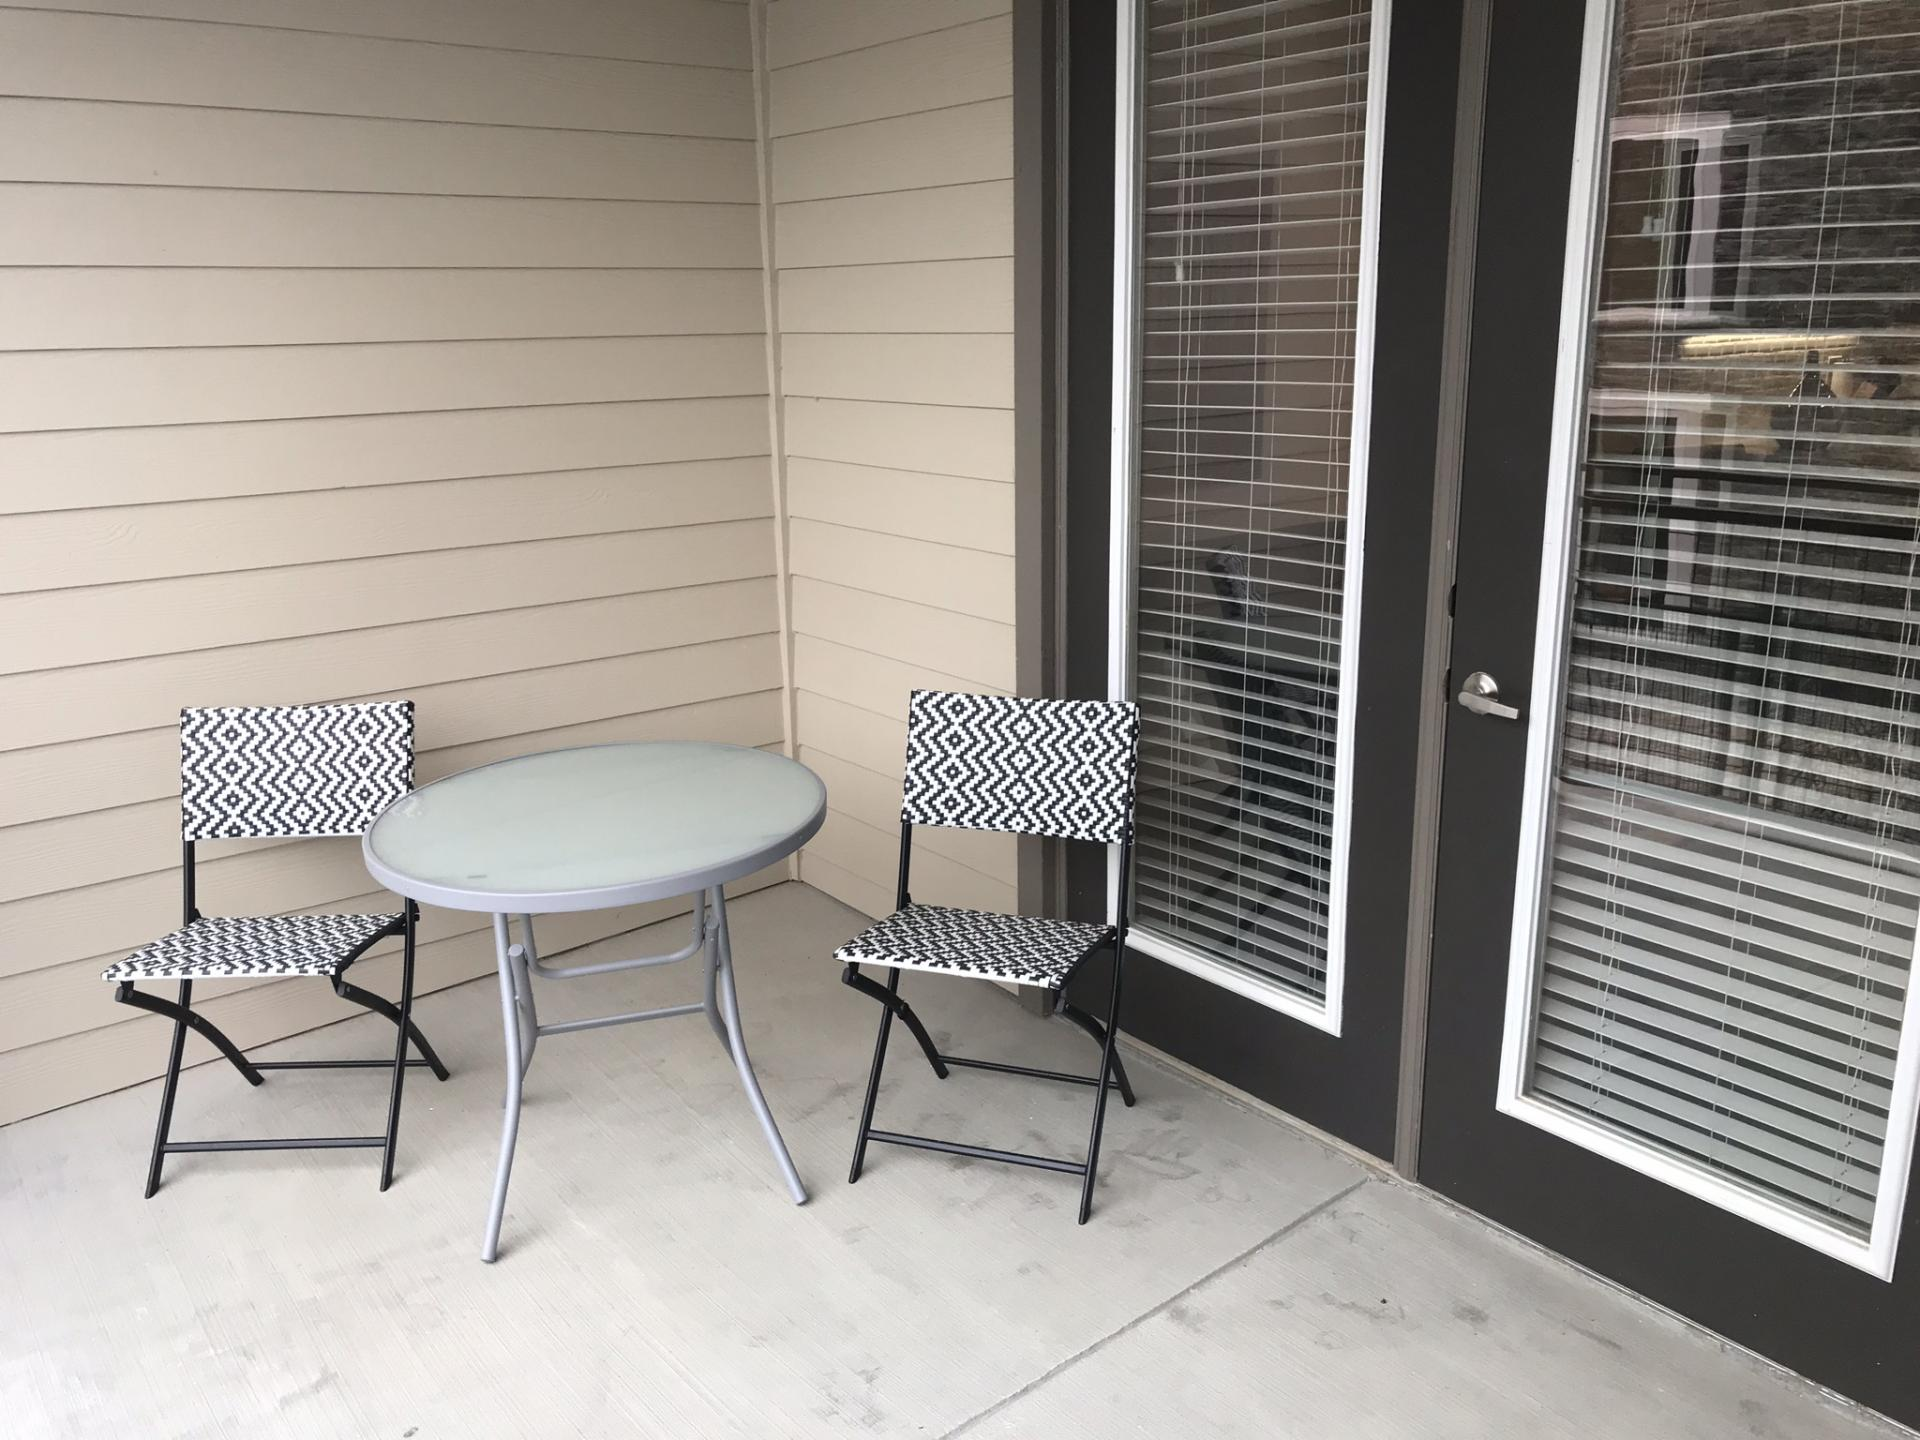 Balcony at Preserve at Iron Horse Apartment, Centre, Franklin